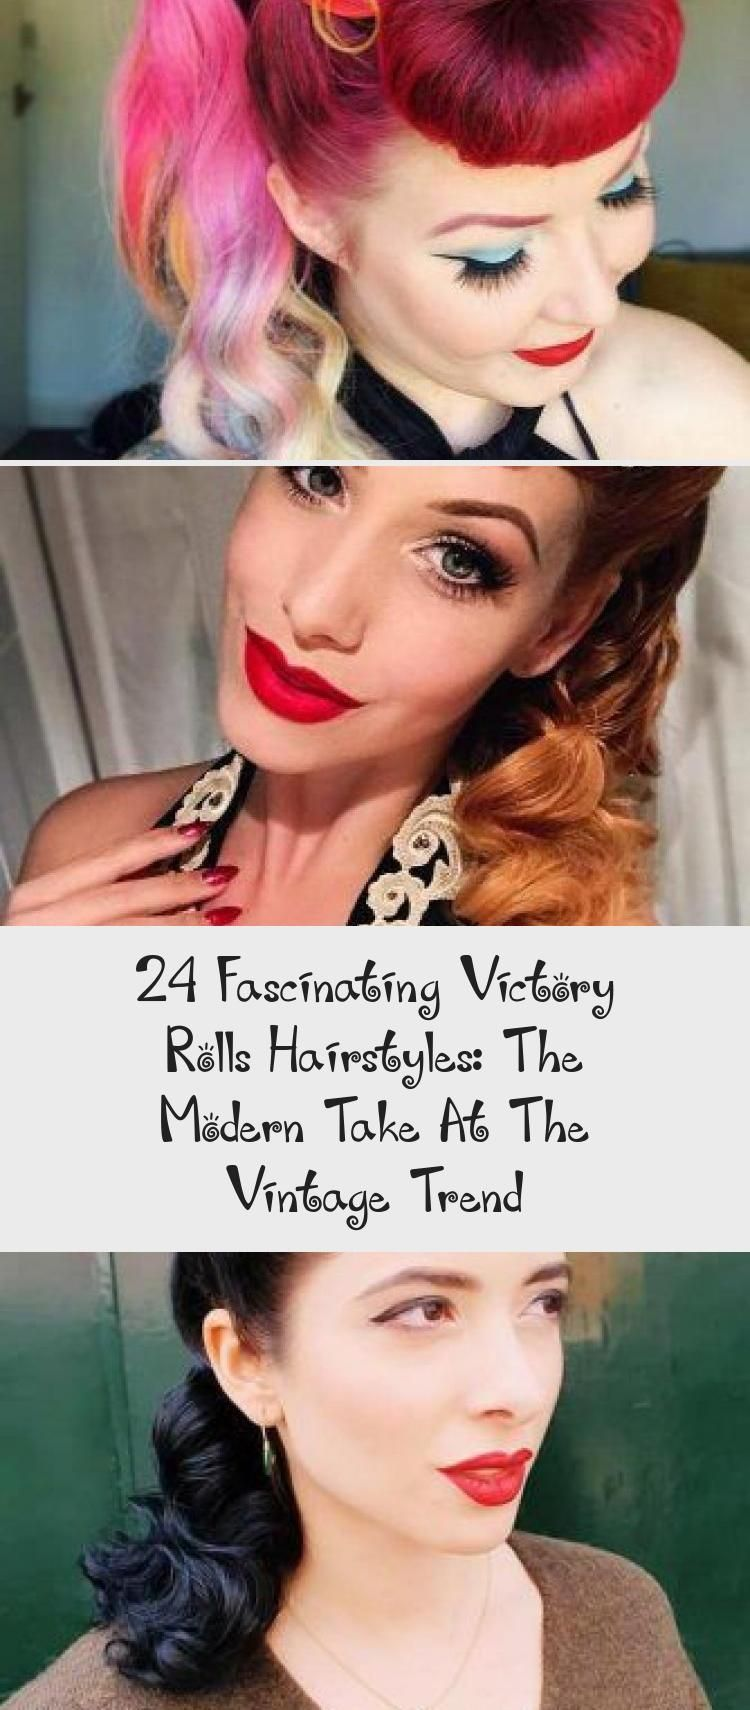 24 Fascinating Victory Rolls Hairstyles: The Modern Take At The Vintage Trend | Roll hairstyle ...